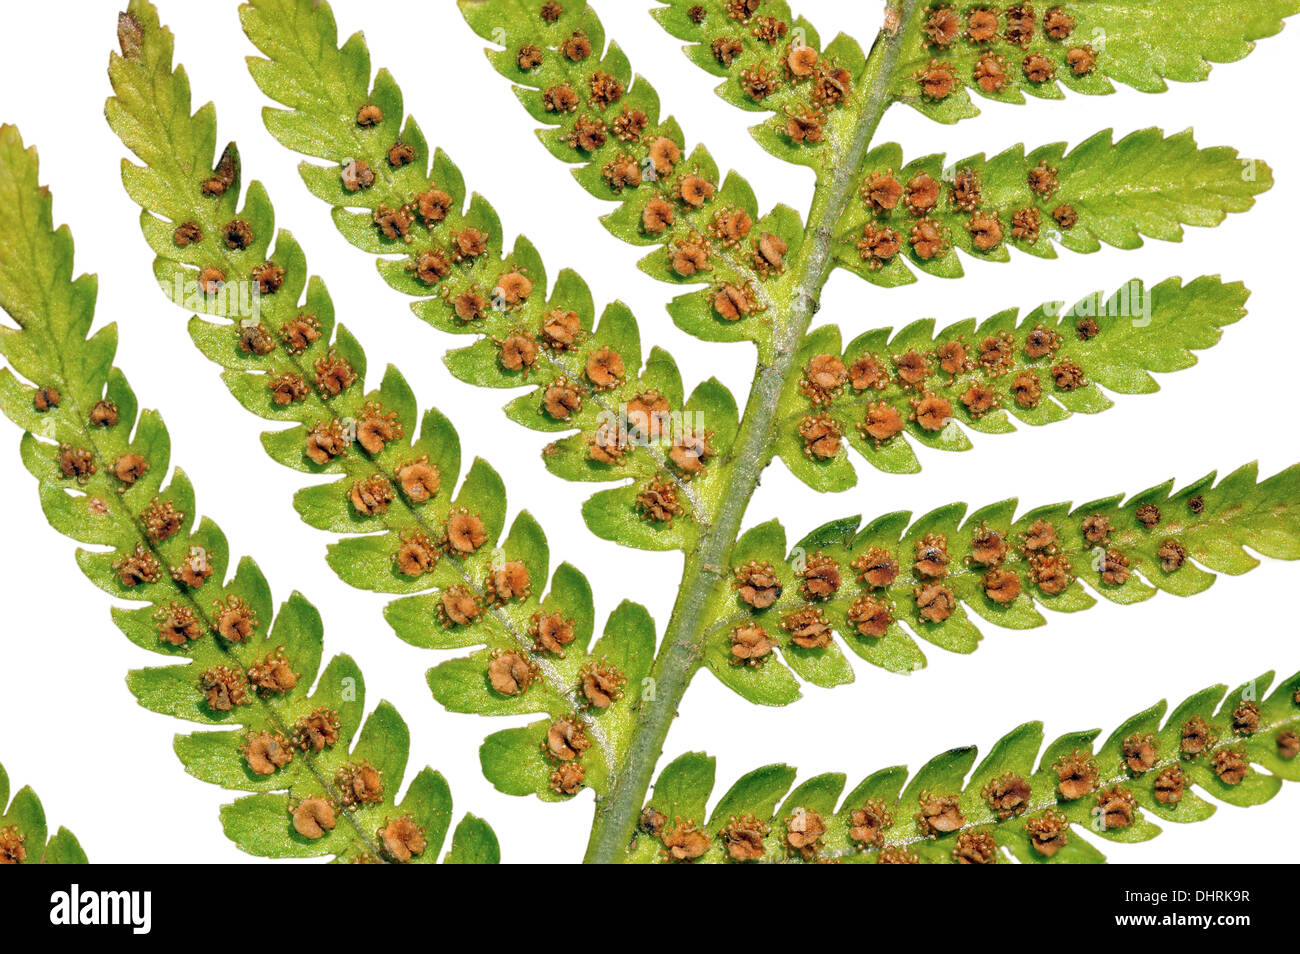 Leaf Of The Male Fern With Mature Sporangia Stock Photo